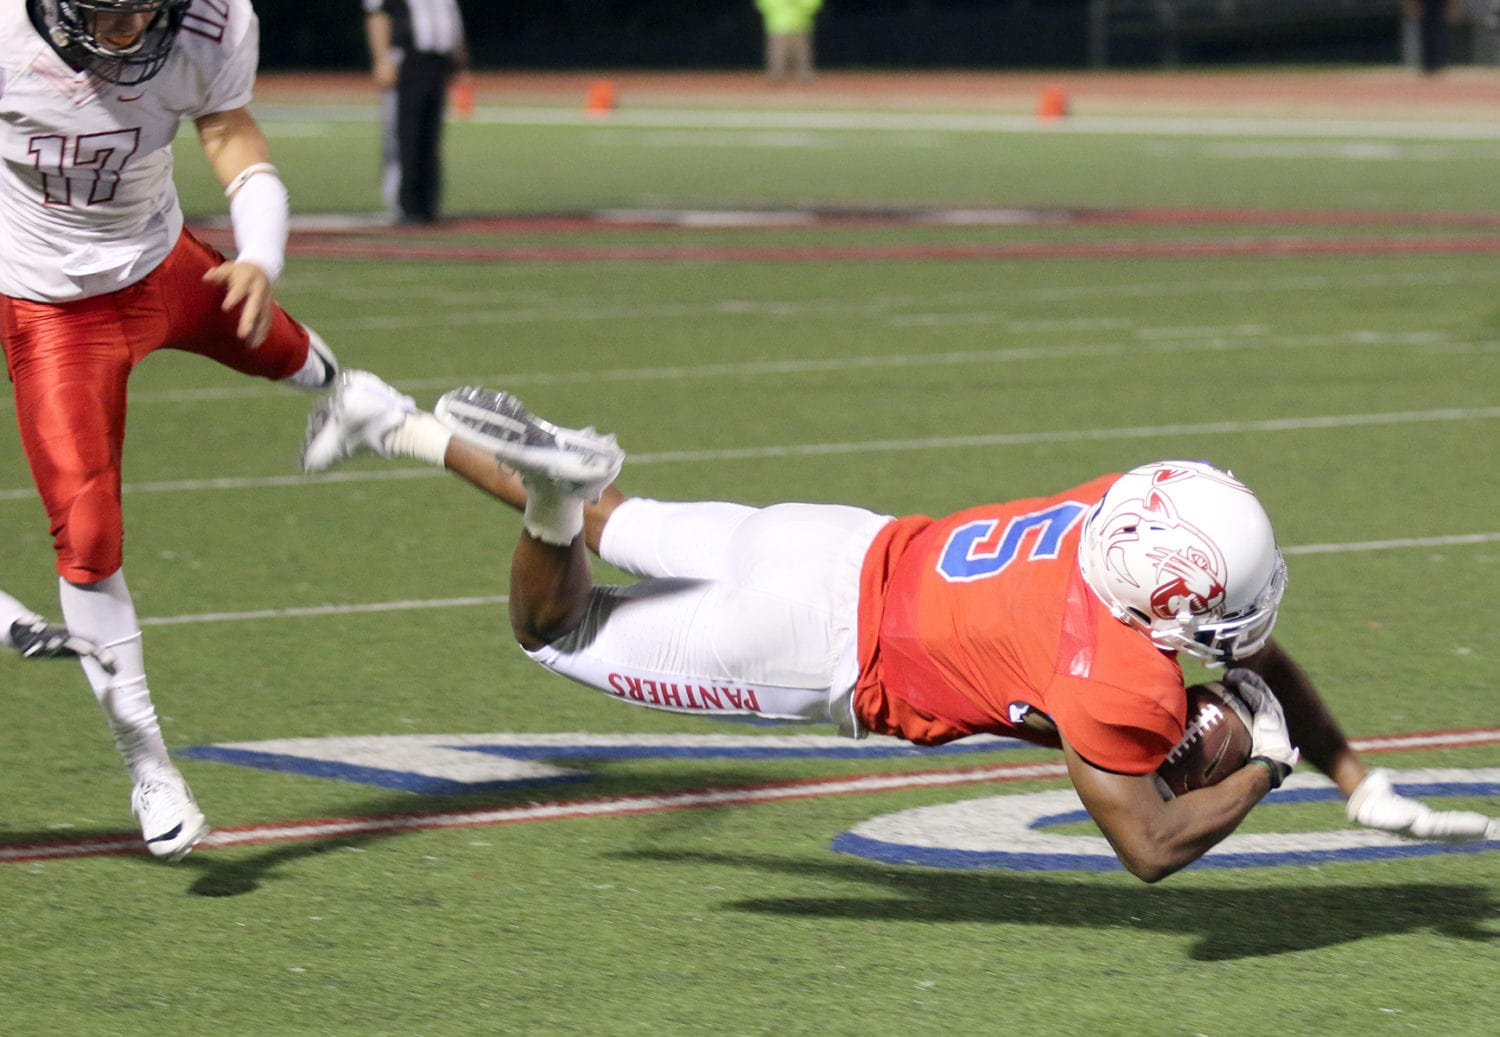 Duncanville Wide Receiver Tre Siggers dives for a catch at the Harker 20 yard line. Siggers gained 64 yards in the Panthers 24-7 win Friday, November 11 at home. (Jose Sanchez/Duncanville High School)